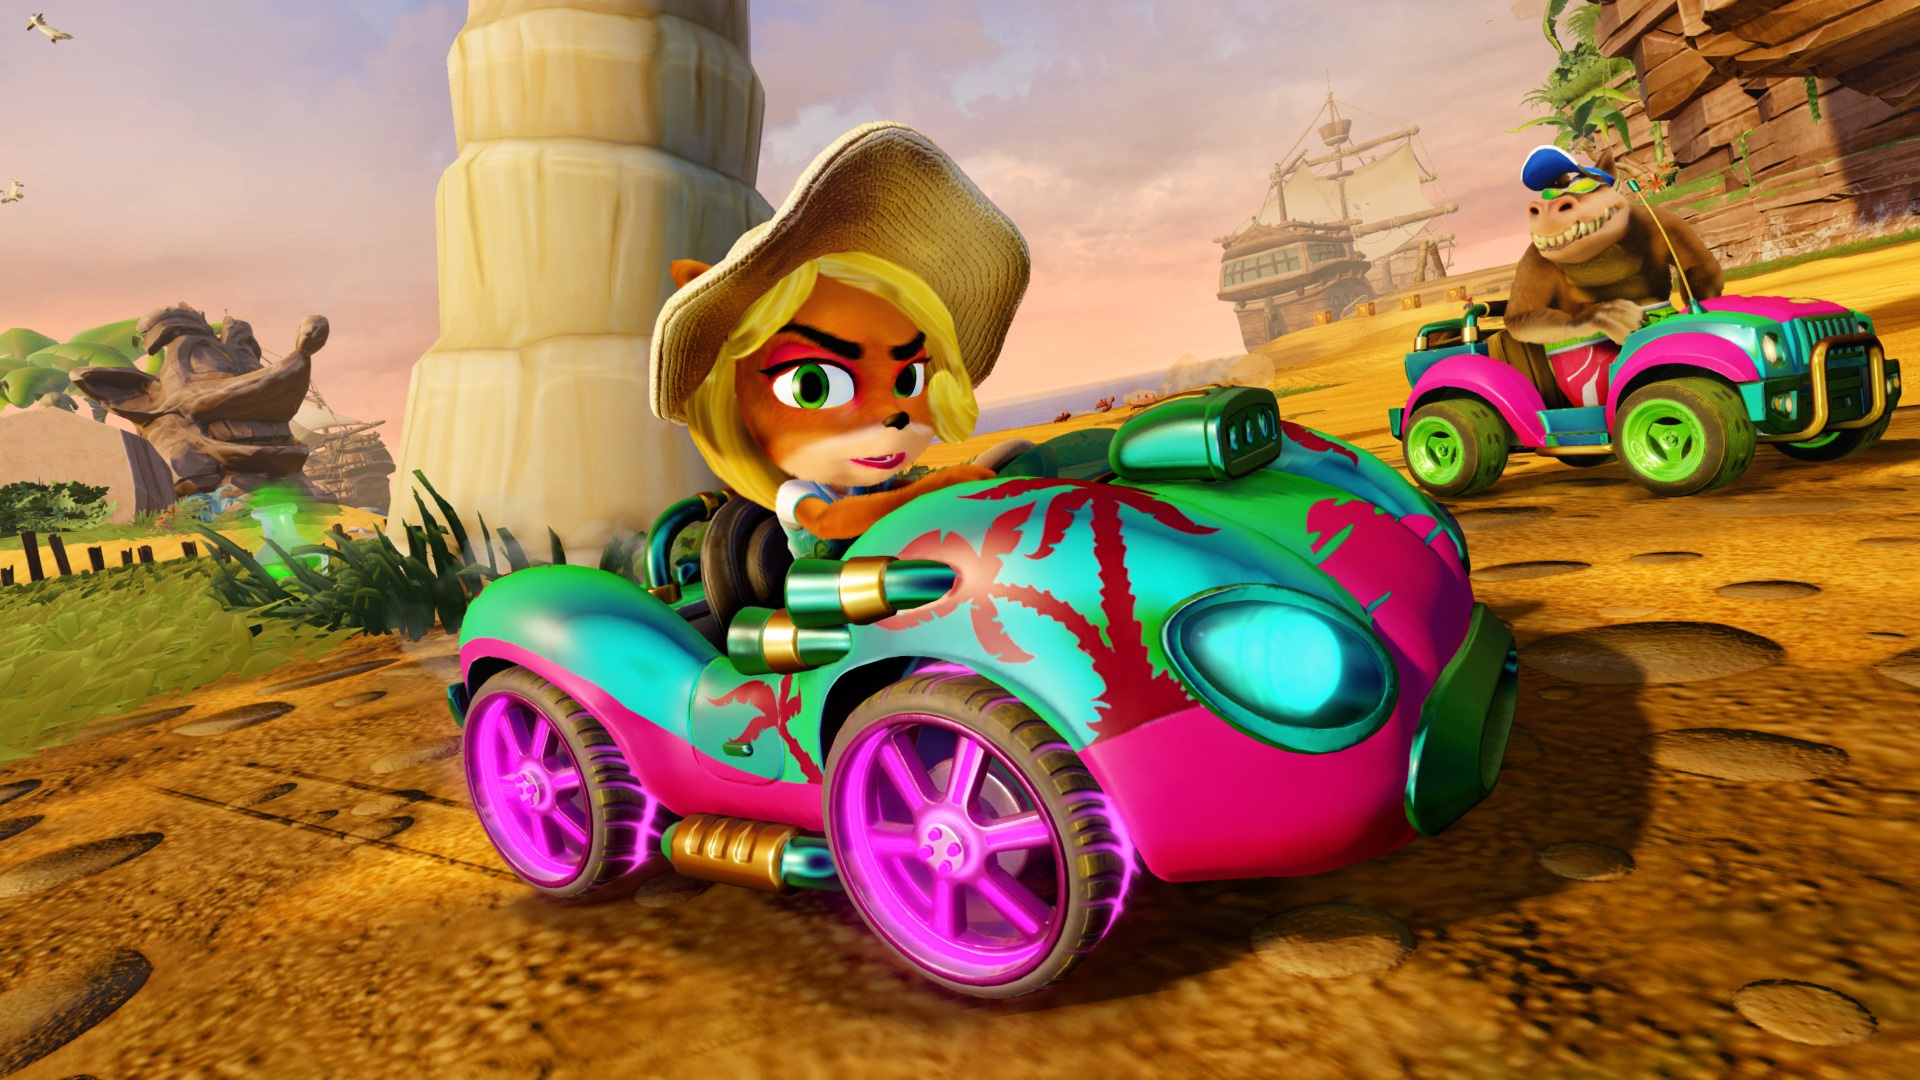 Crash Team Racing Nitro-Fueled - How to Get Wumpa Coins and